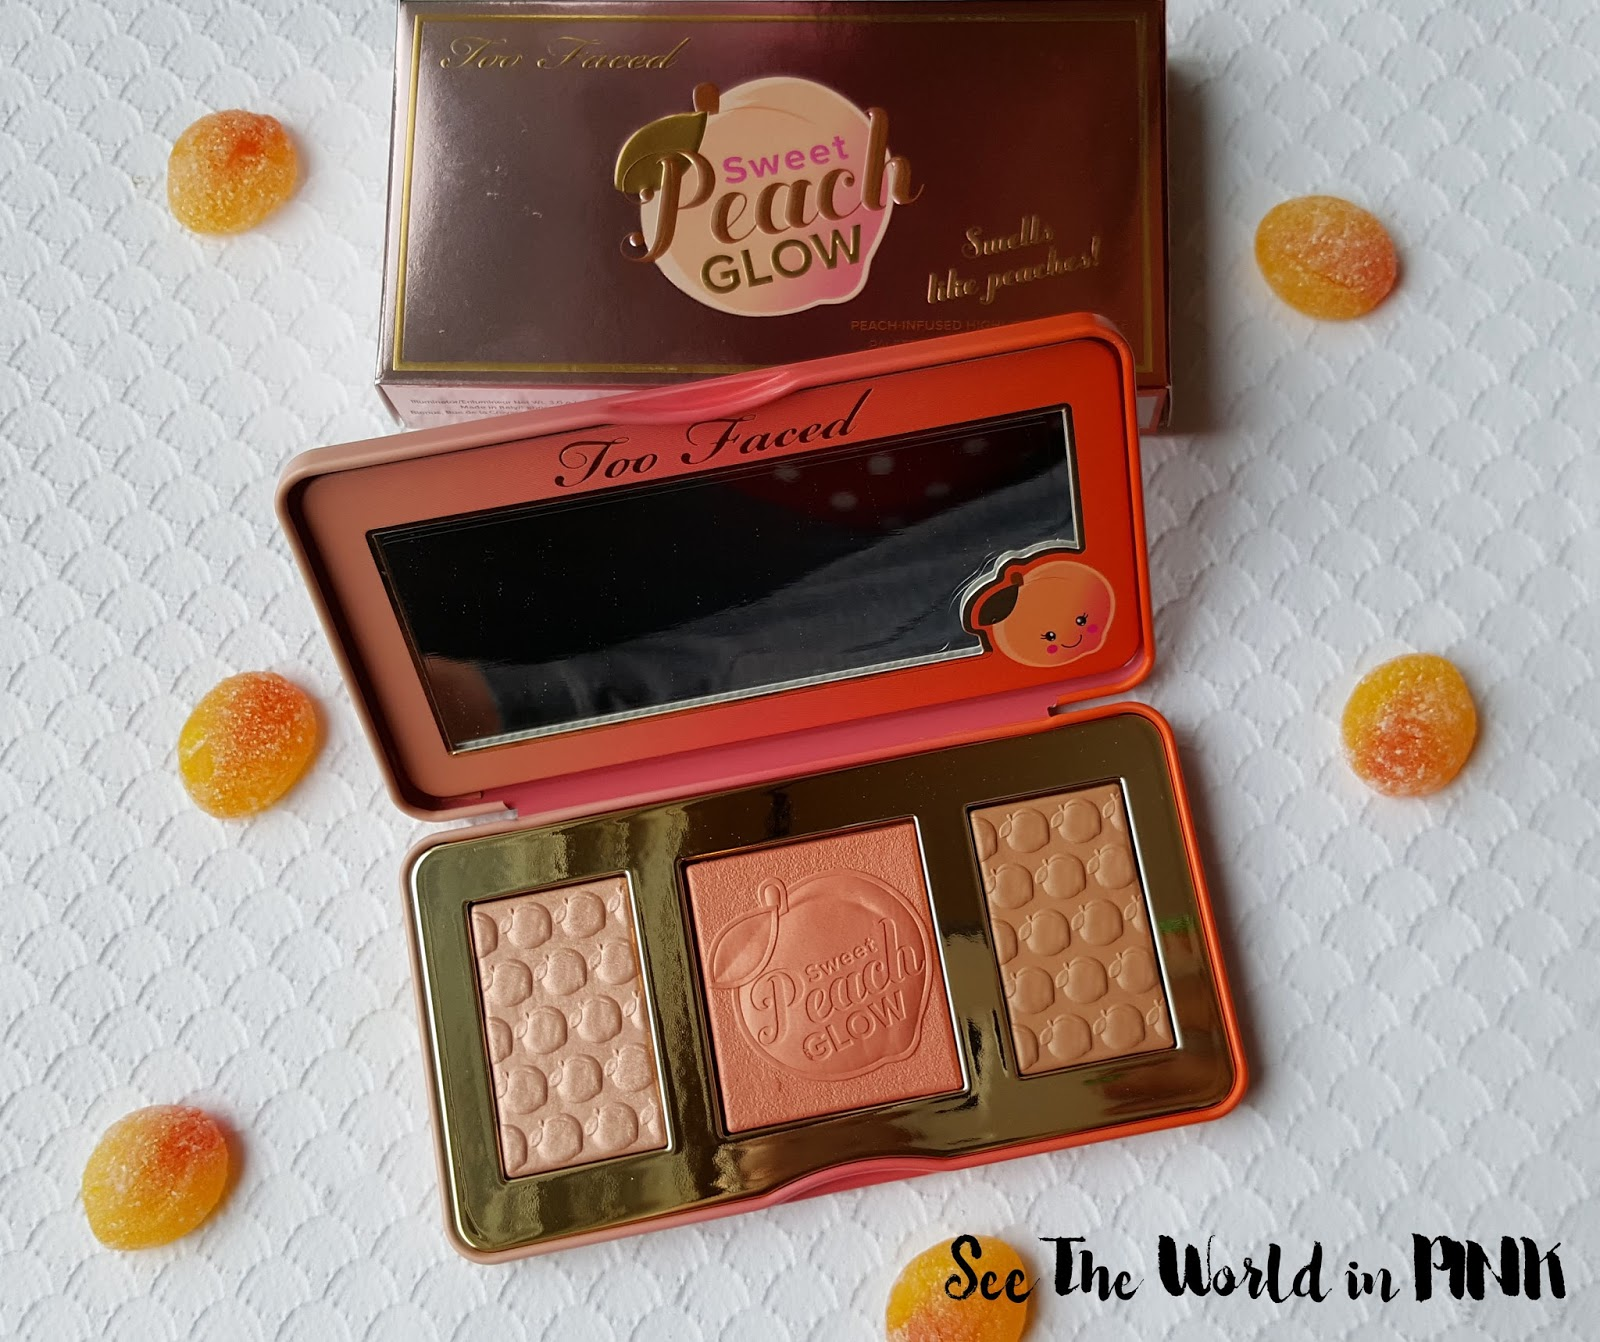 Too Faced Sweet Peach Glow Peach-Infused Highlighting Palette - Swatches and Review!